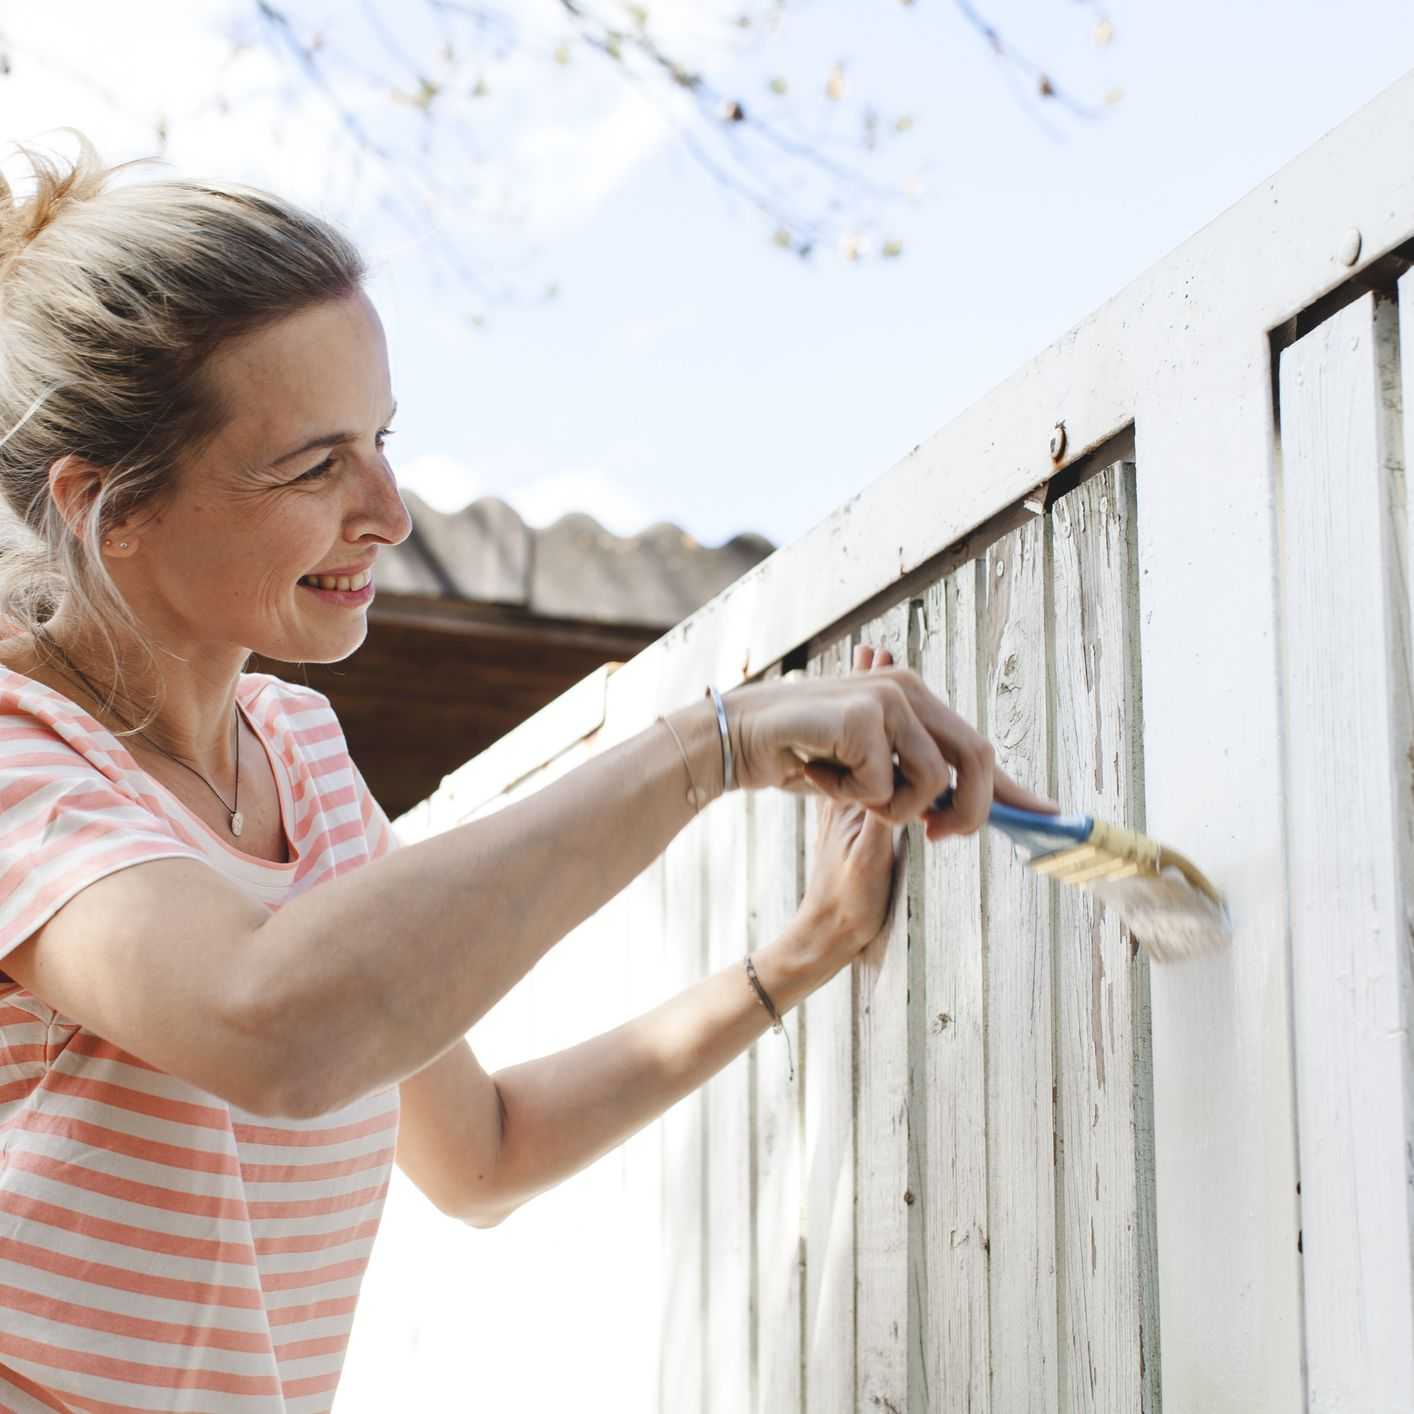 What Is the Average Cost to Build a Fence?